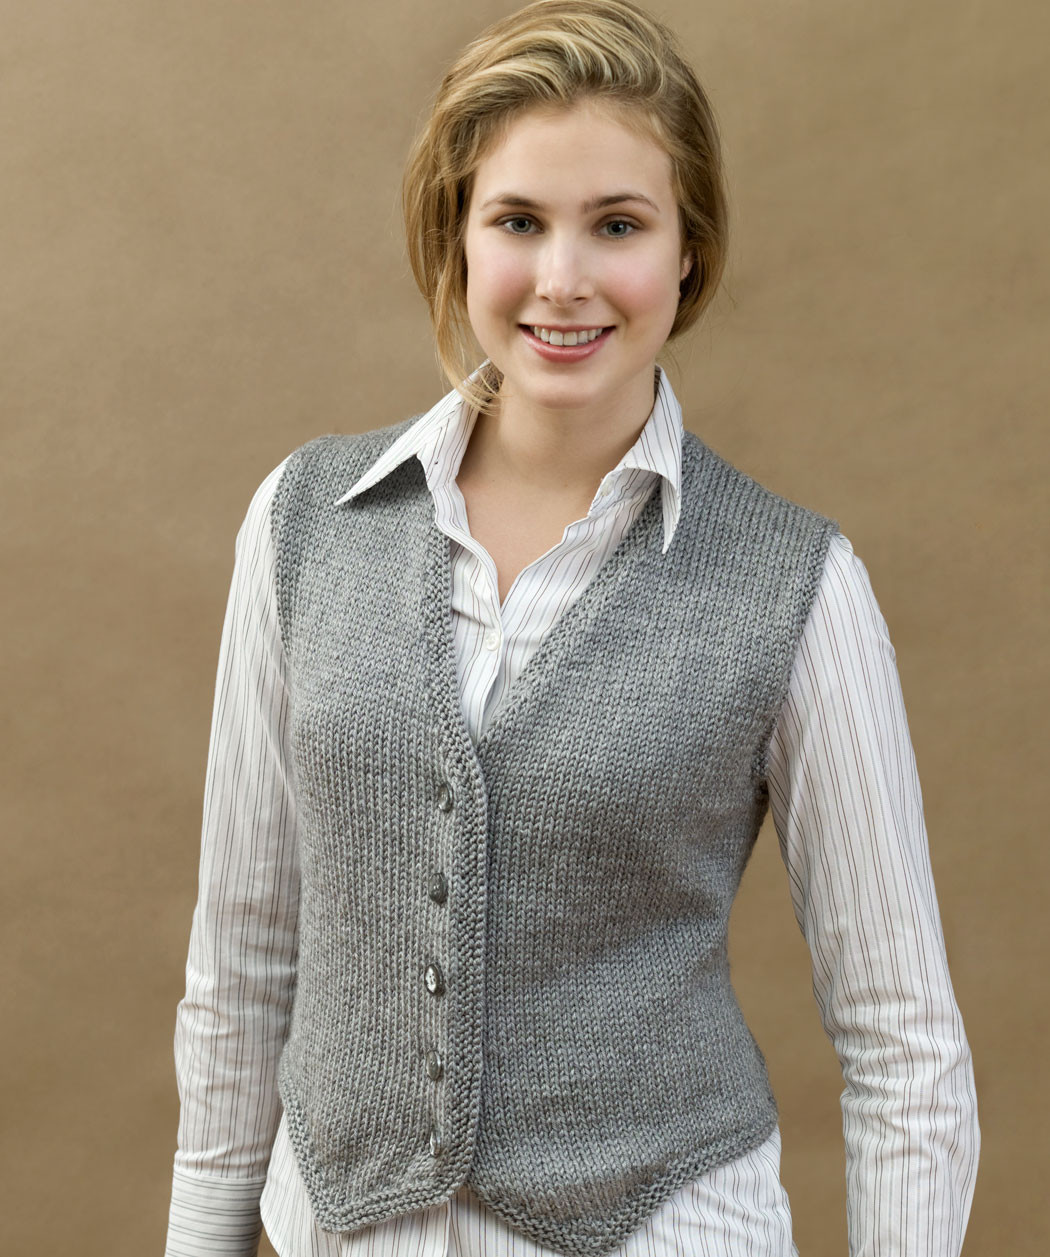 Luxury Knitted Vest Patterns Knitted Vest Patterns Of Amazing 50 Models Knitted Vest Patterns